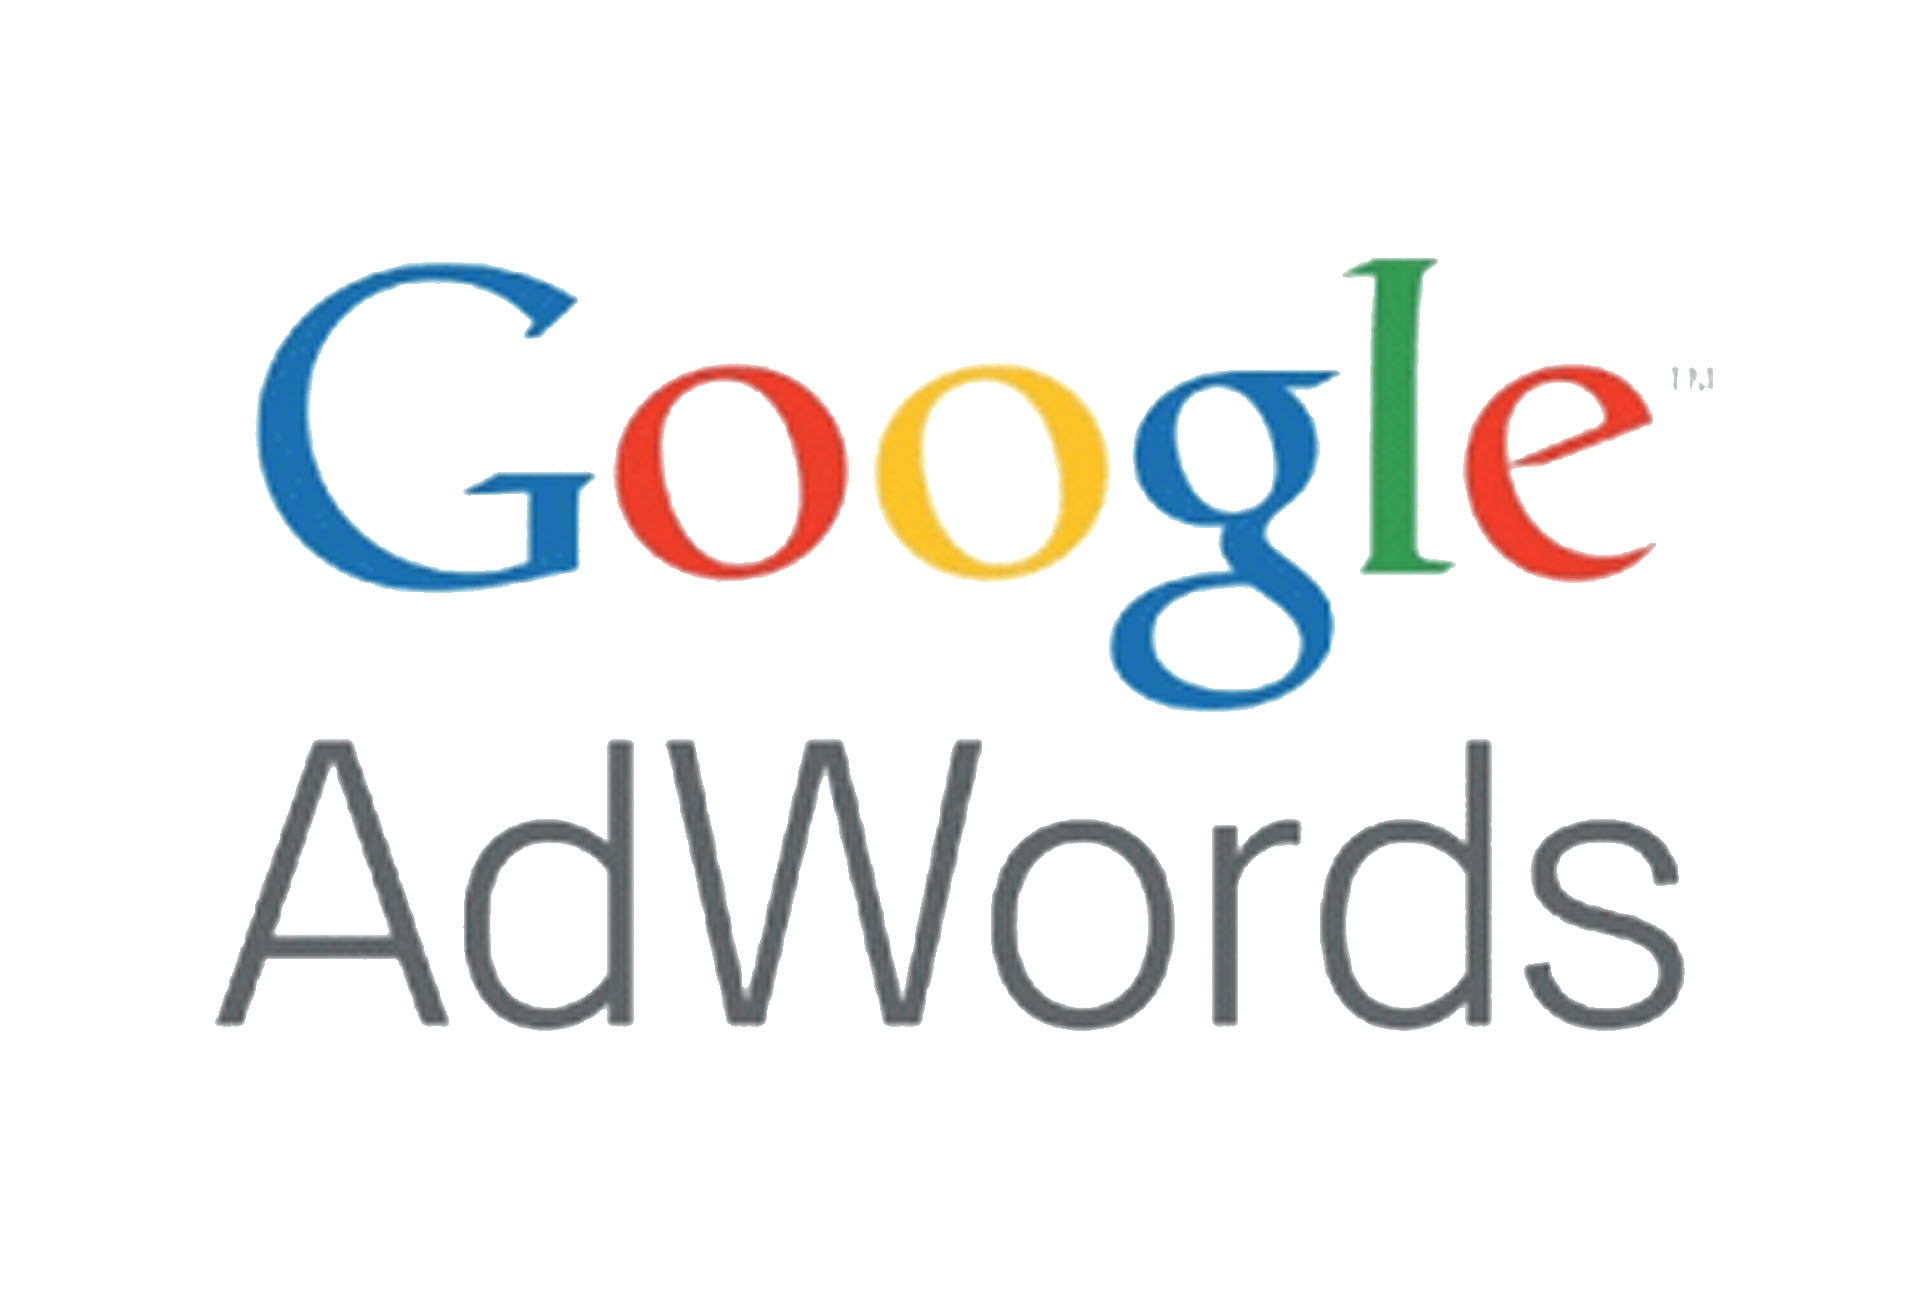 Obiective Google Adwords Display